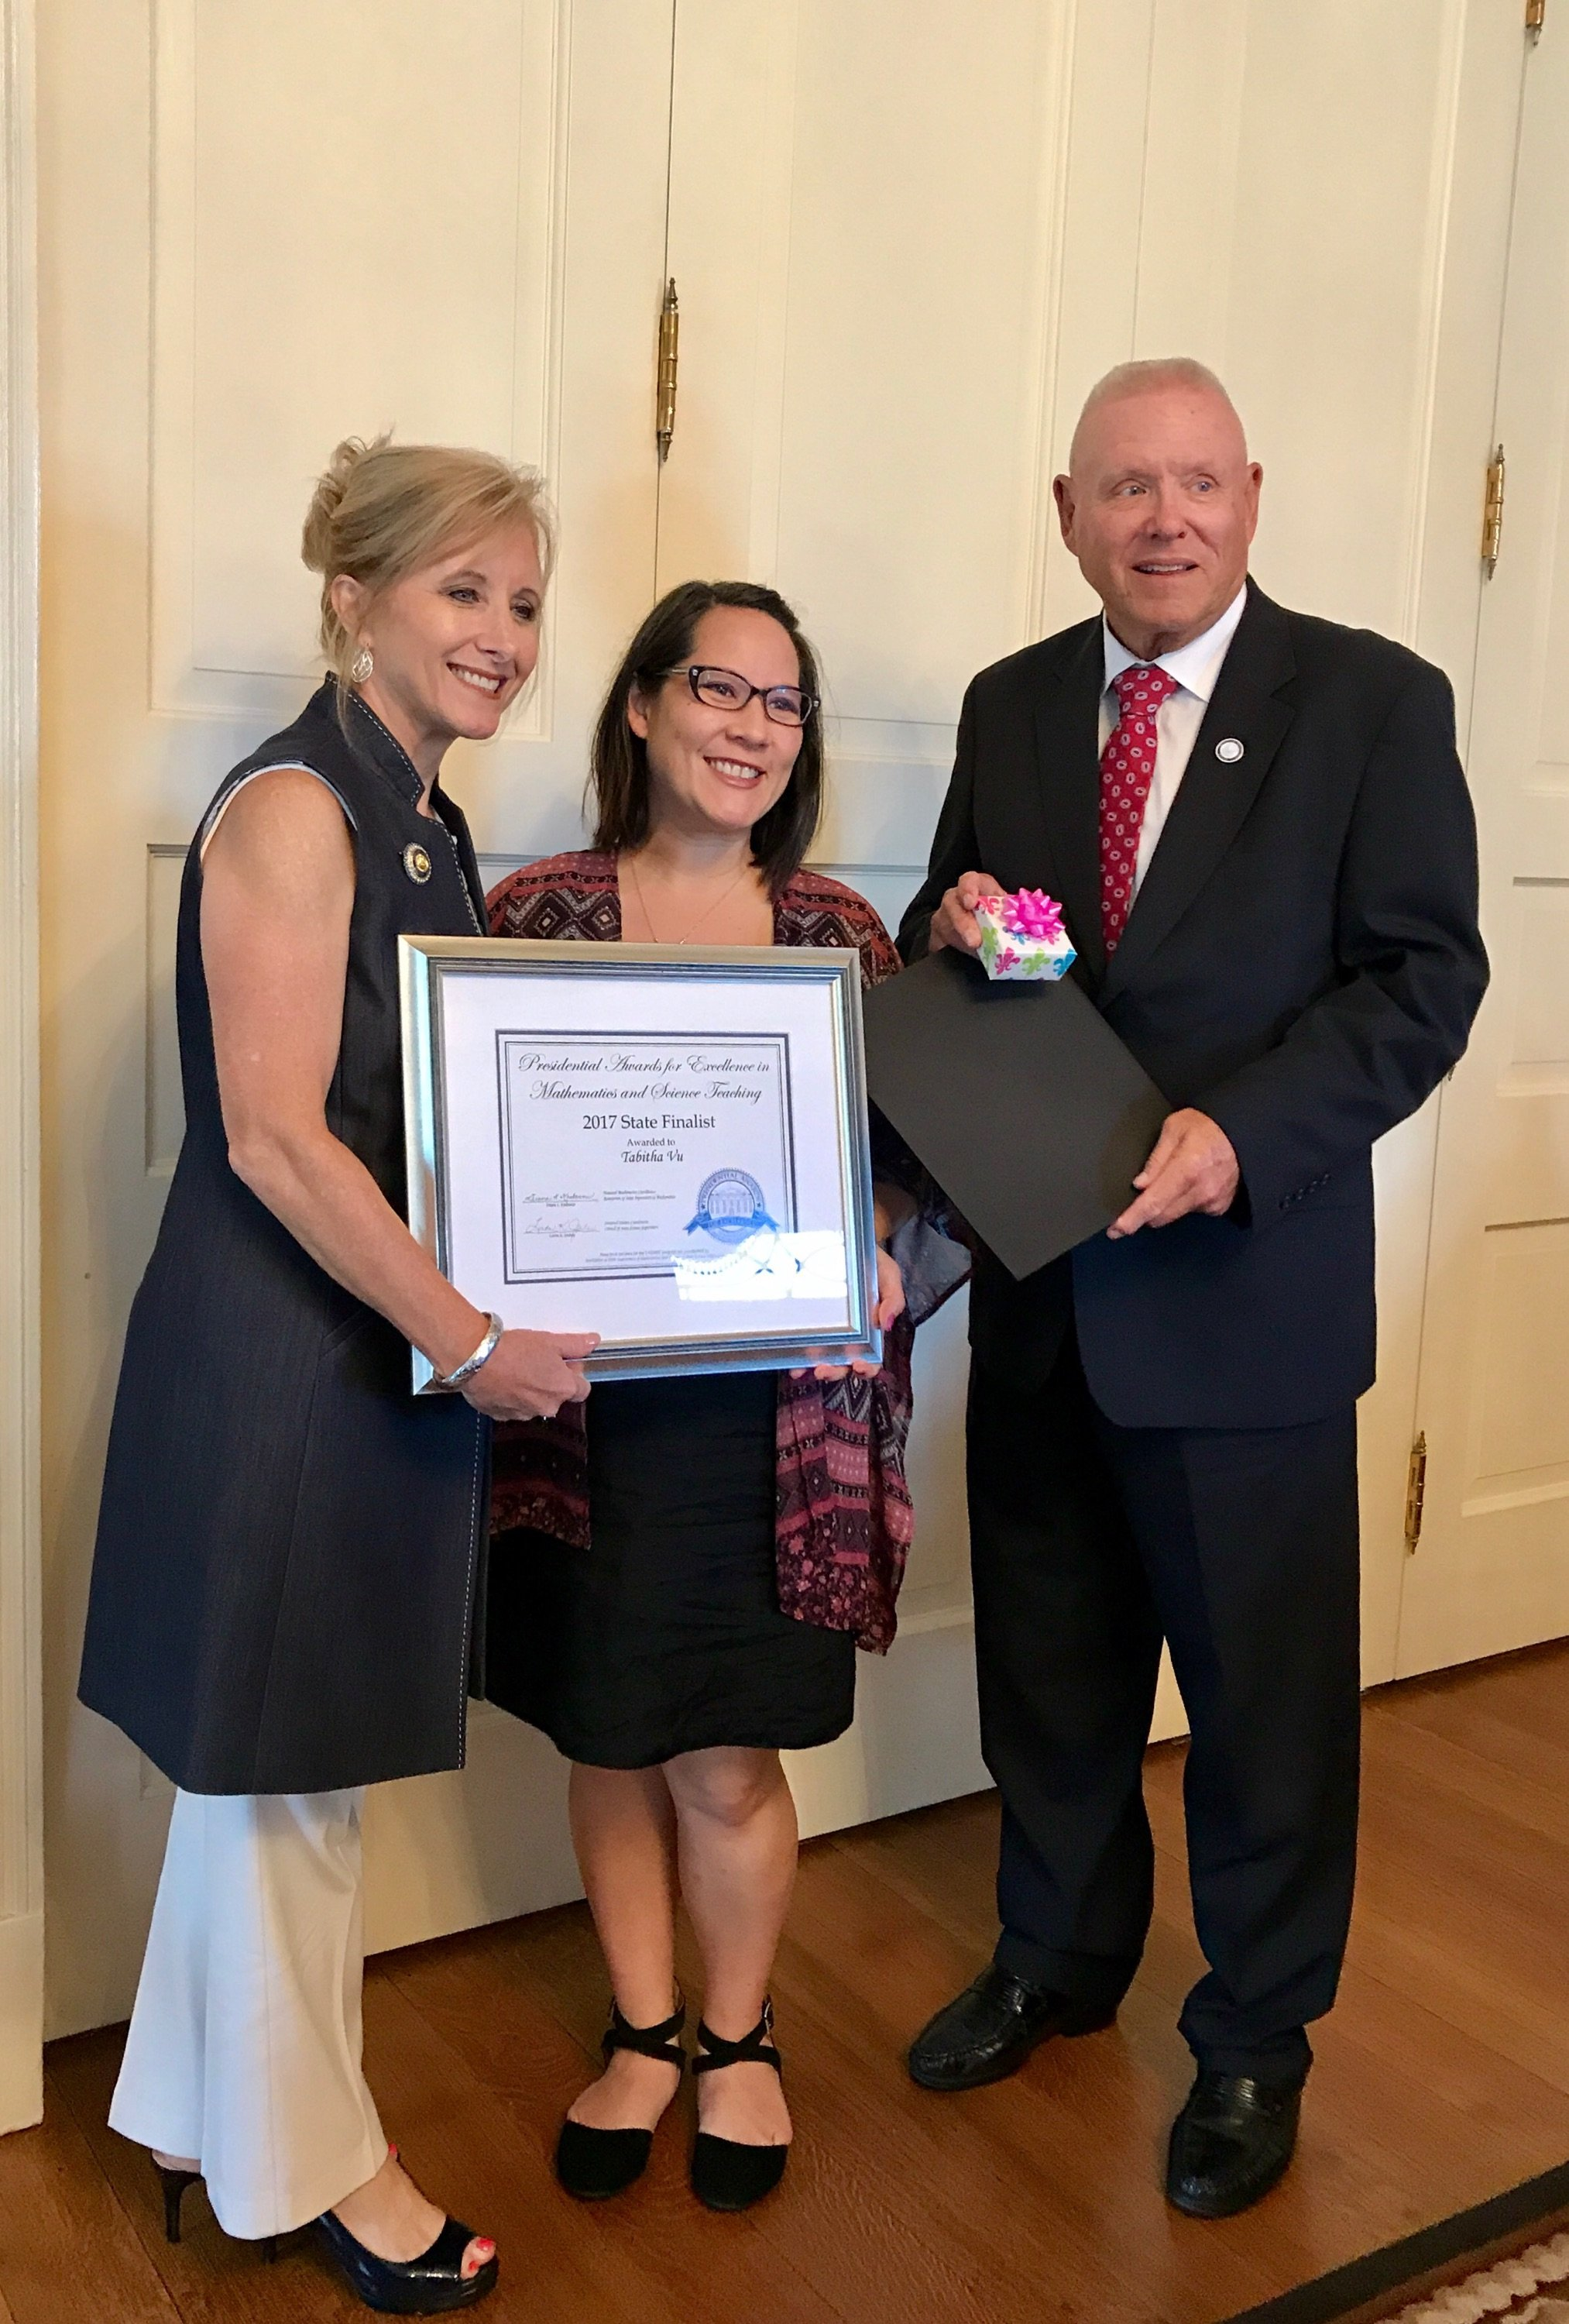 Vu receives certificate with LA first lady & BESE president